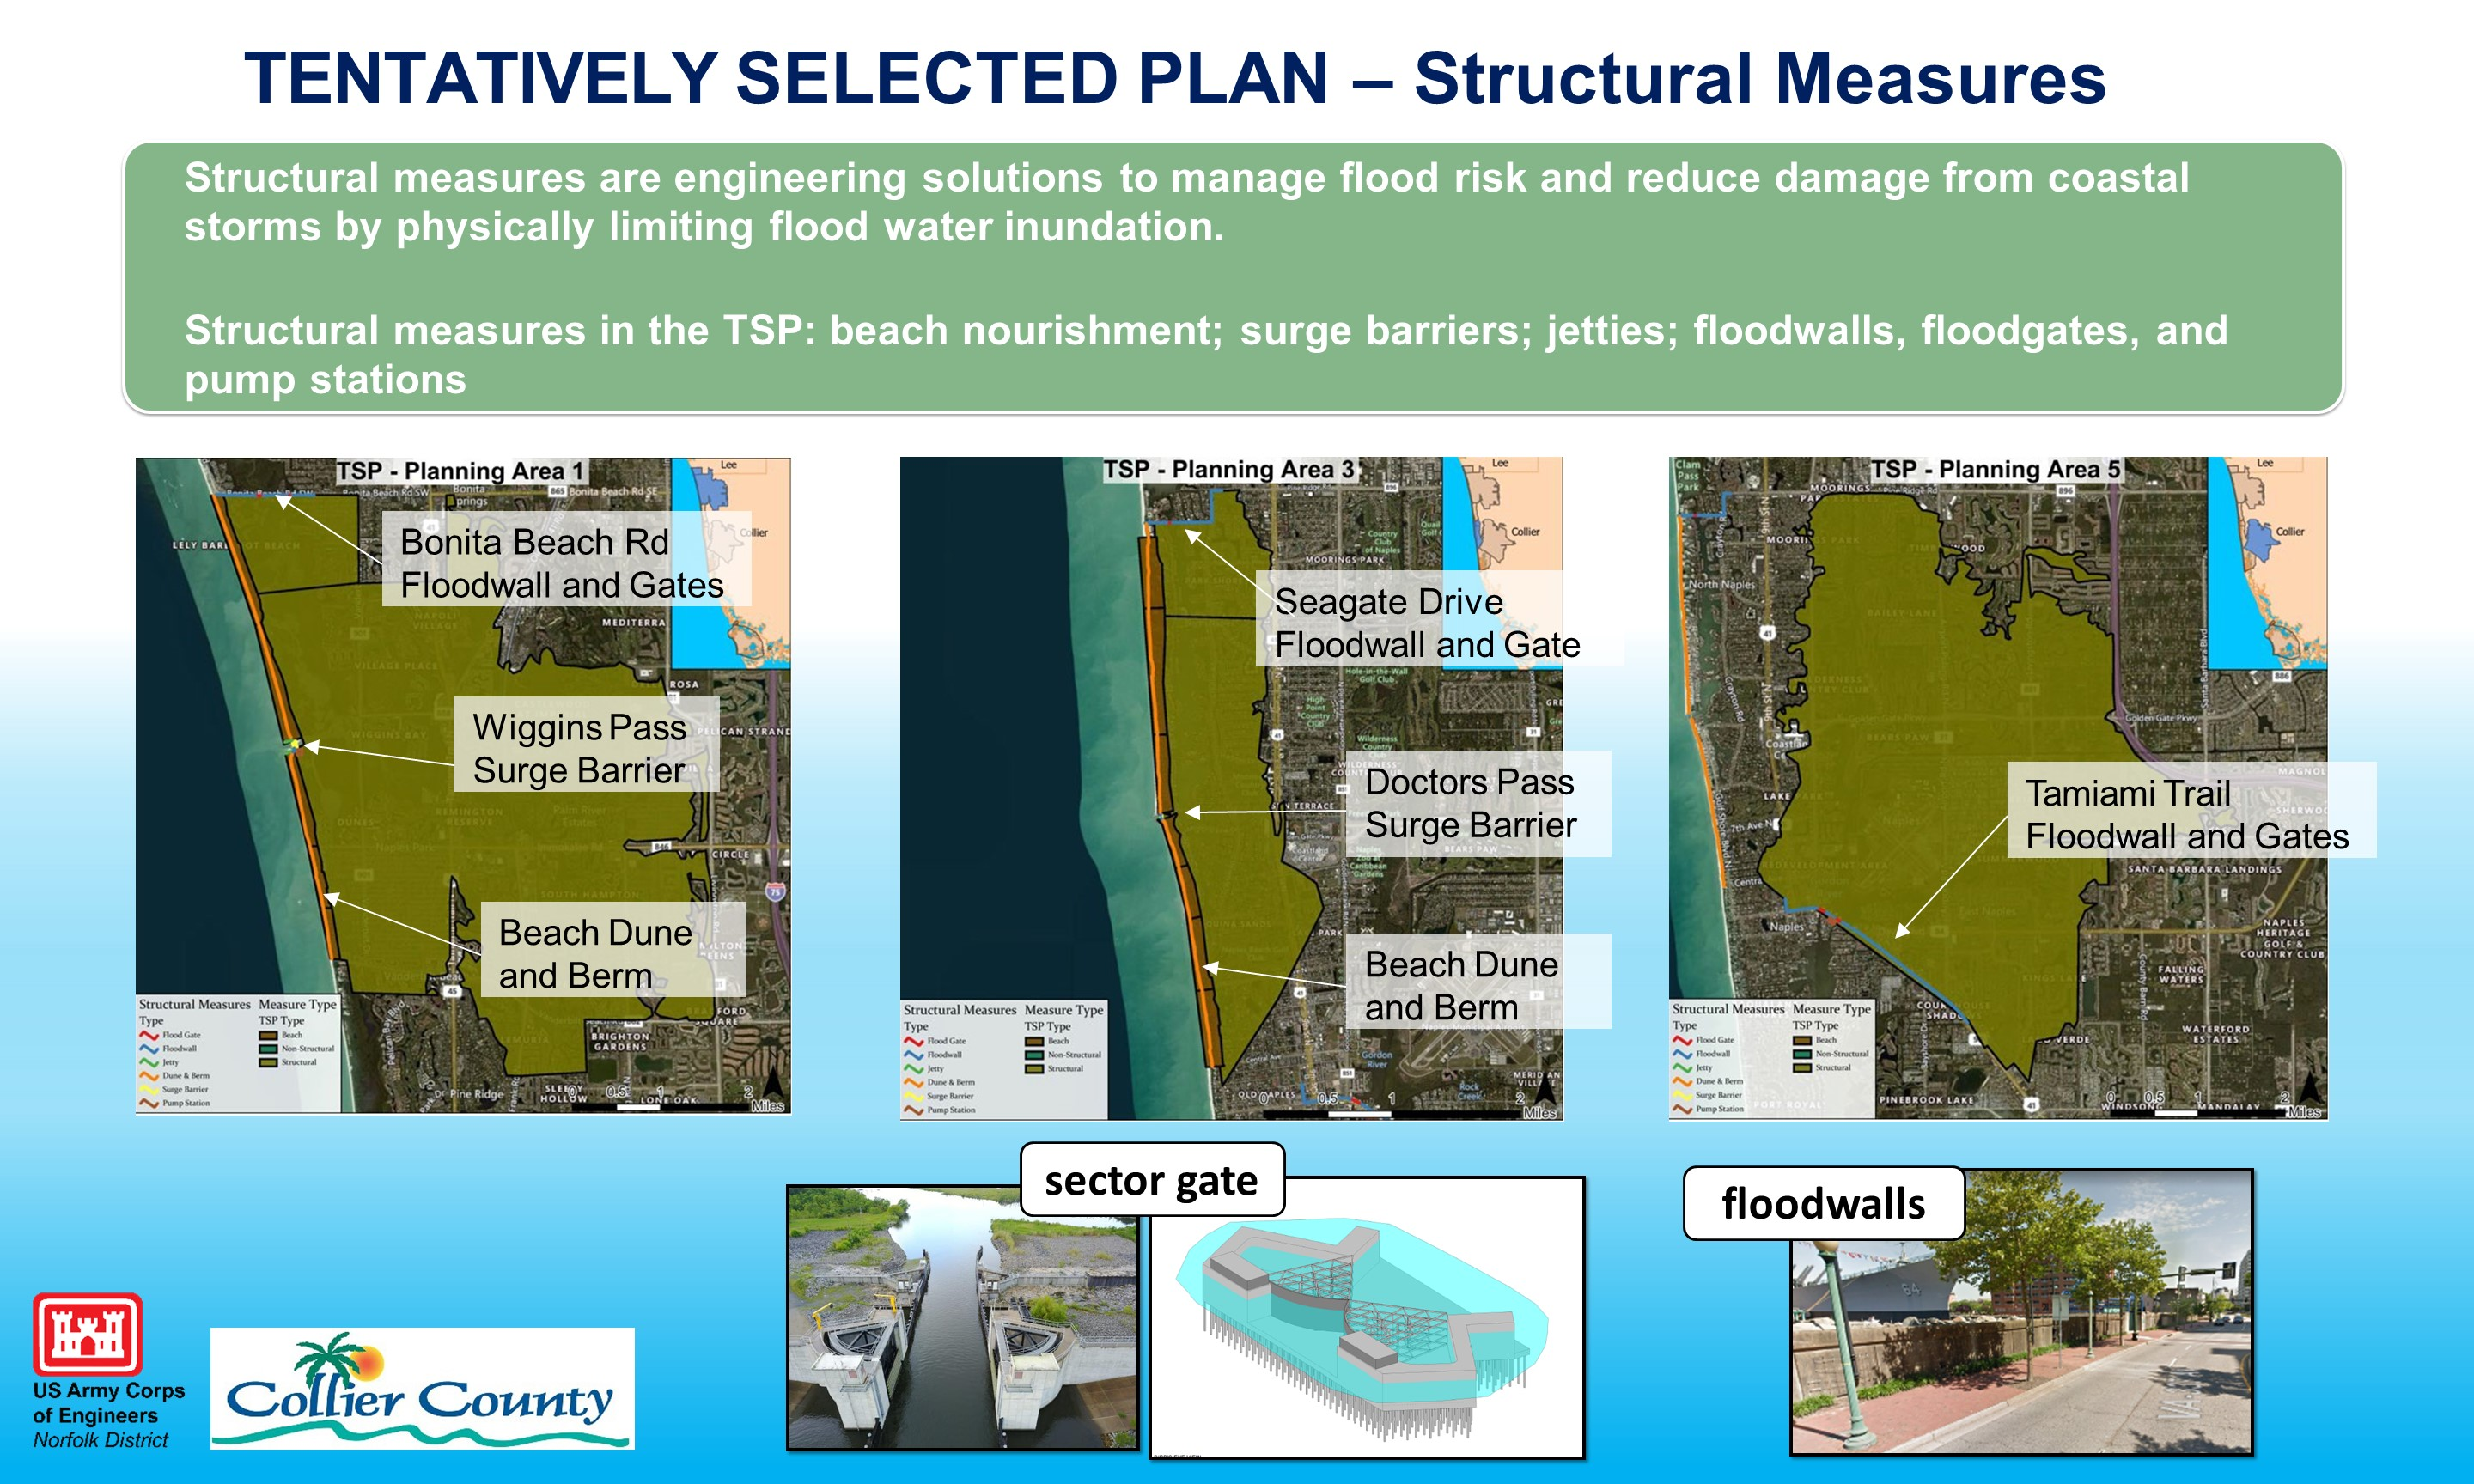 Collier County CSRM Tentatively Selected Plan Structural Measures